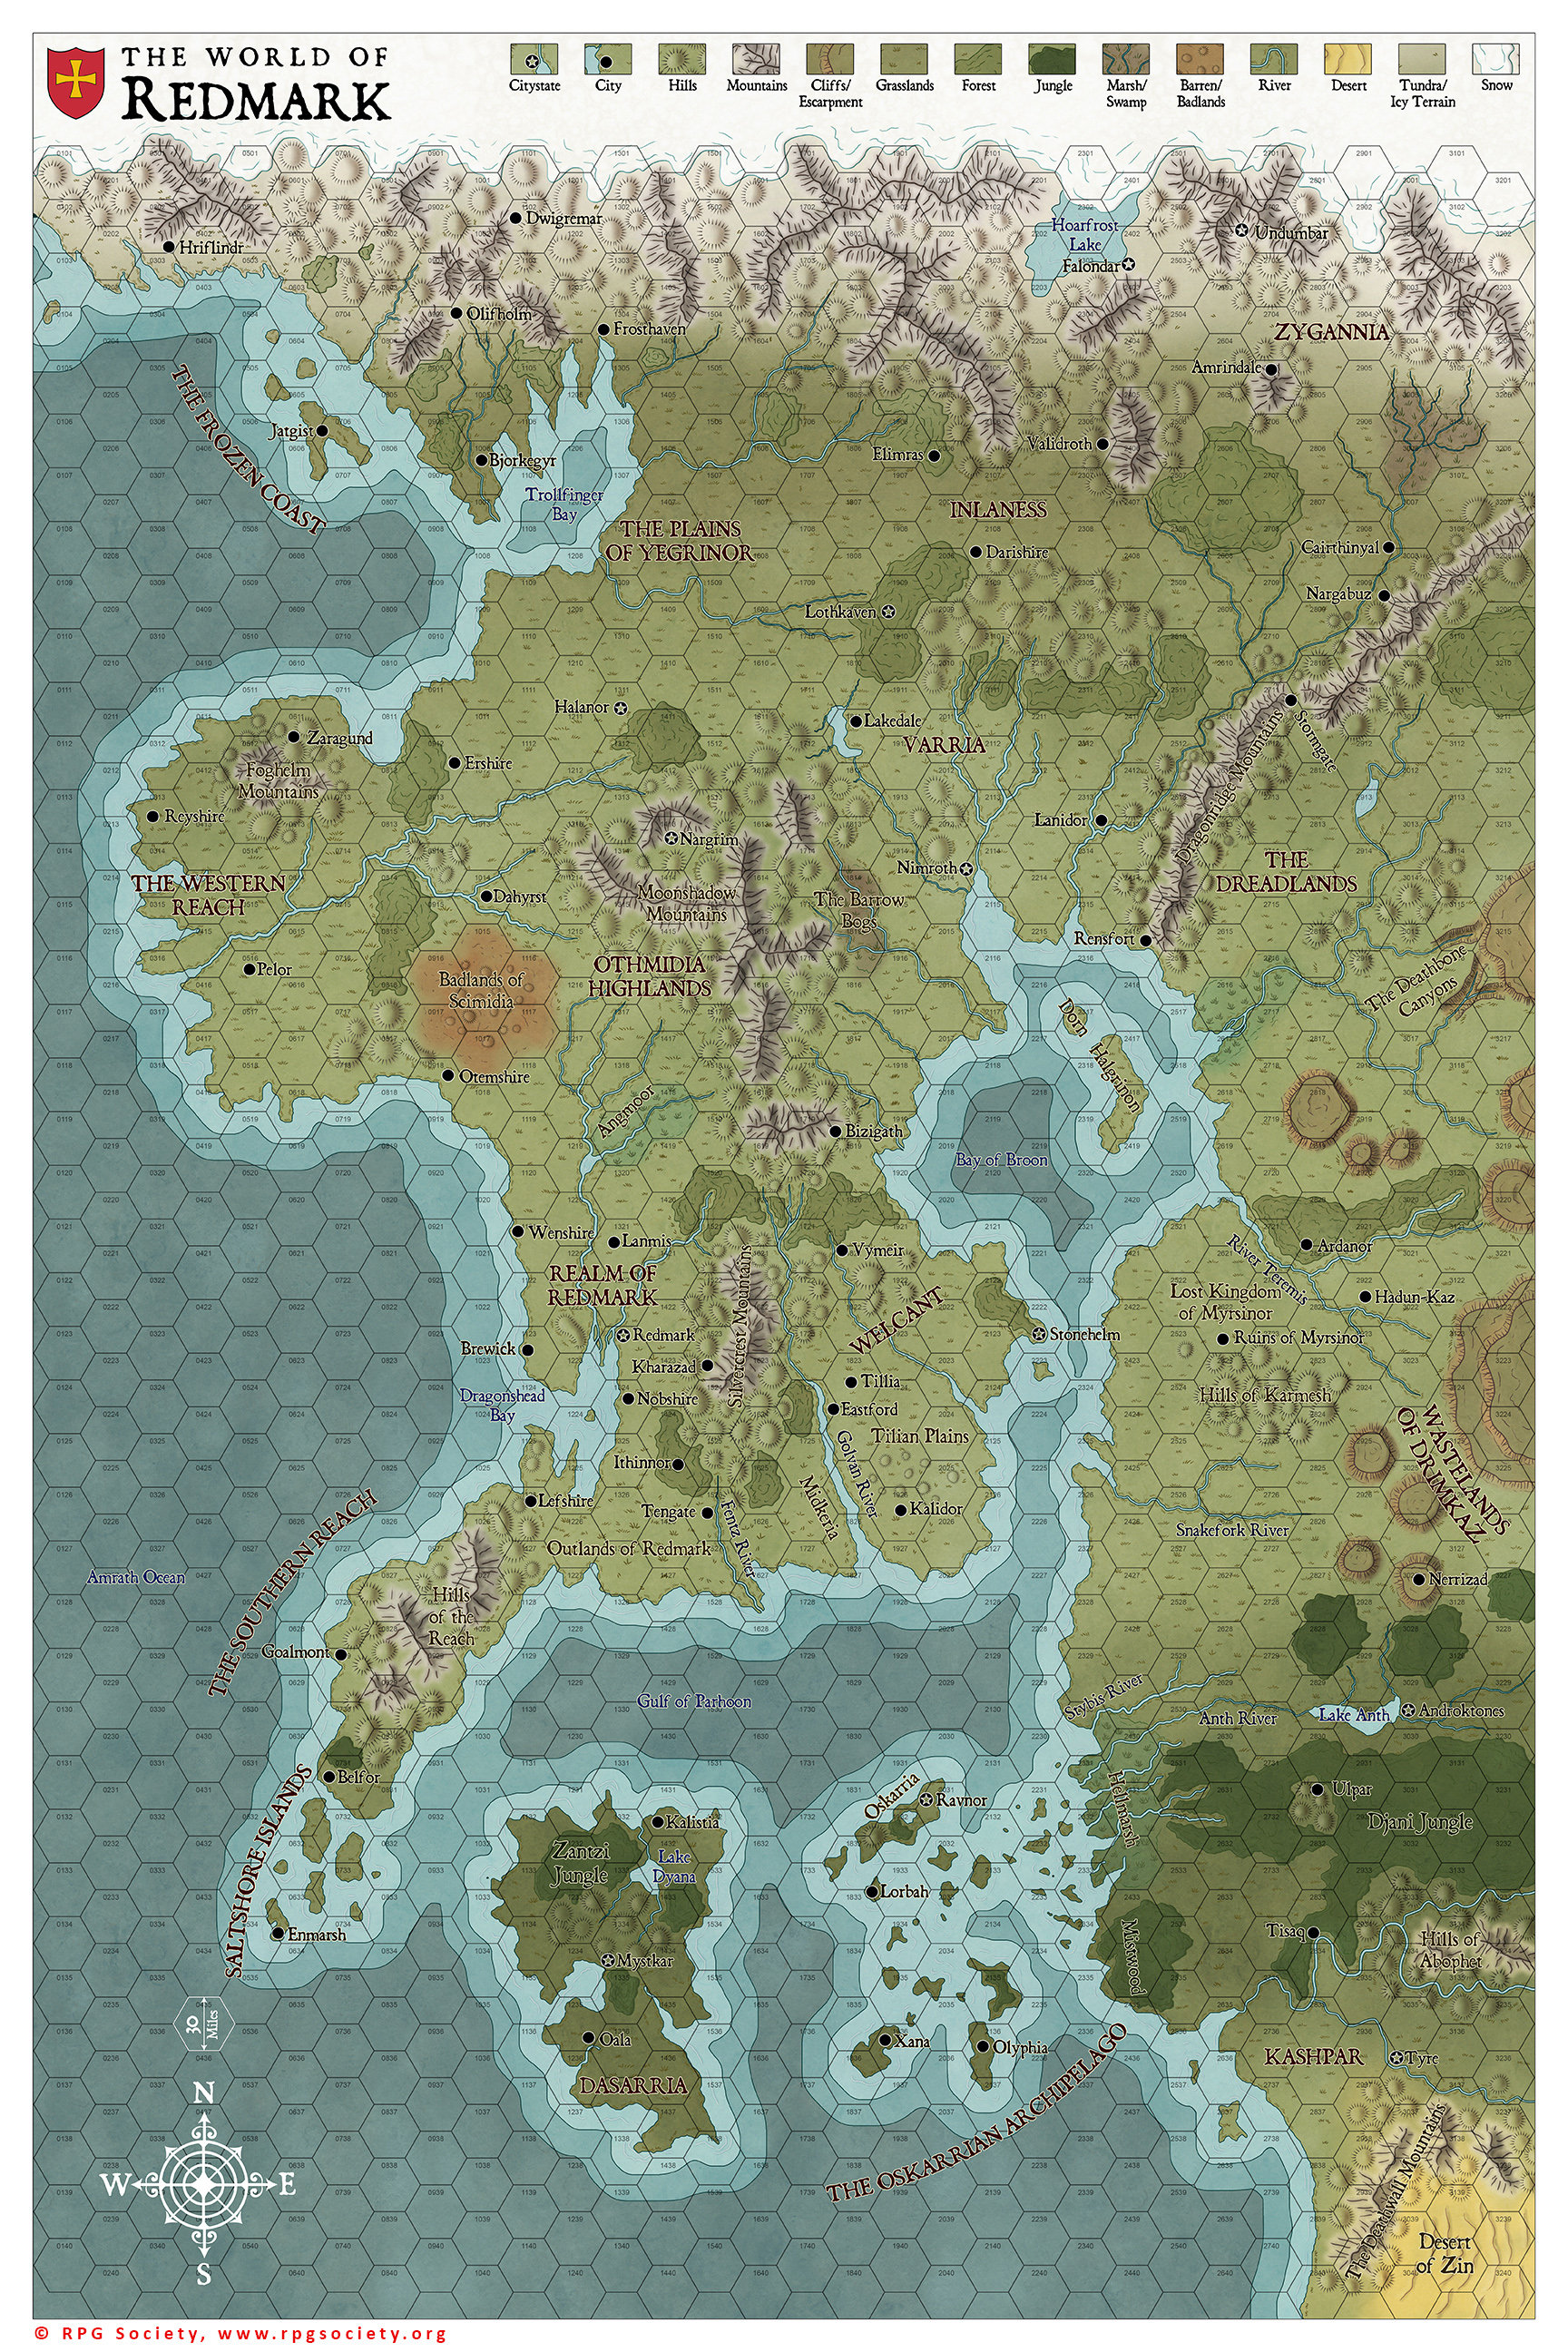 World of Redmark by Sapiento